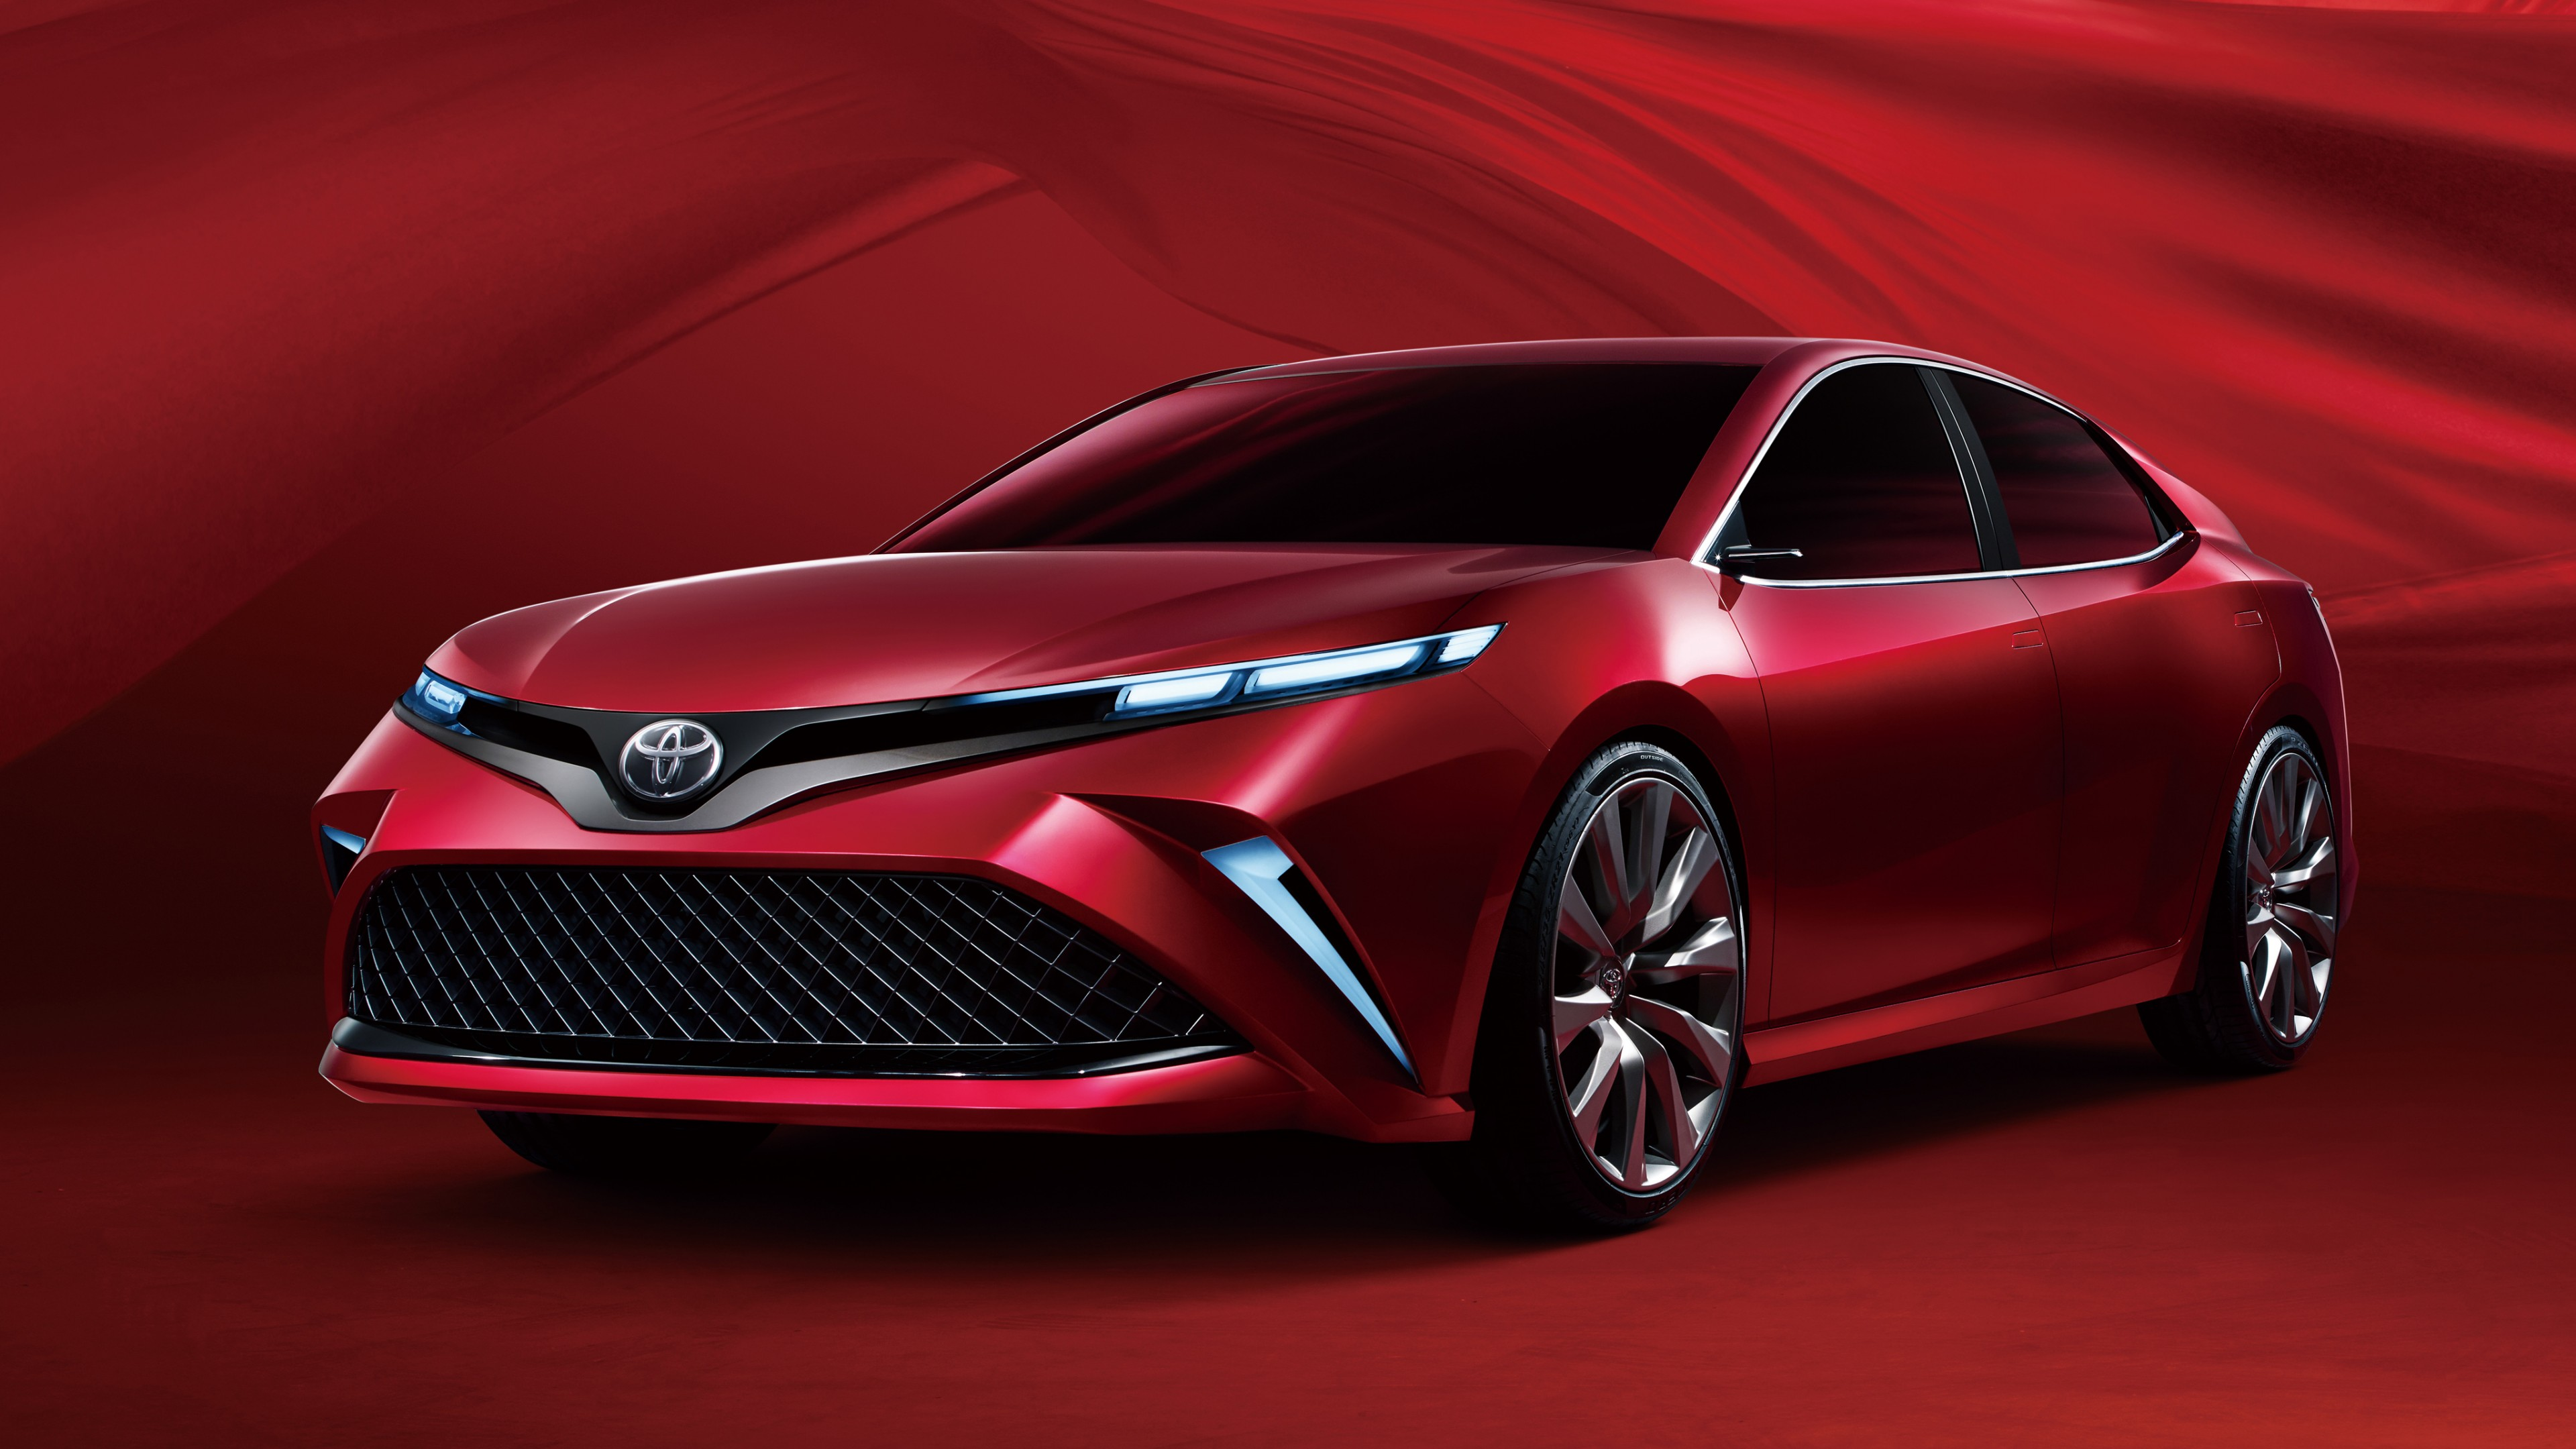 Super Cars Wallpapers Free Download 2017 Toyota Camry 4k Wallpaper Hd Car Wallpapers Id 7747